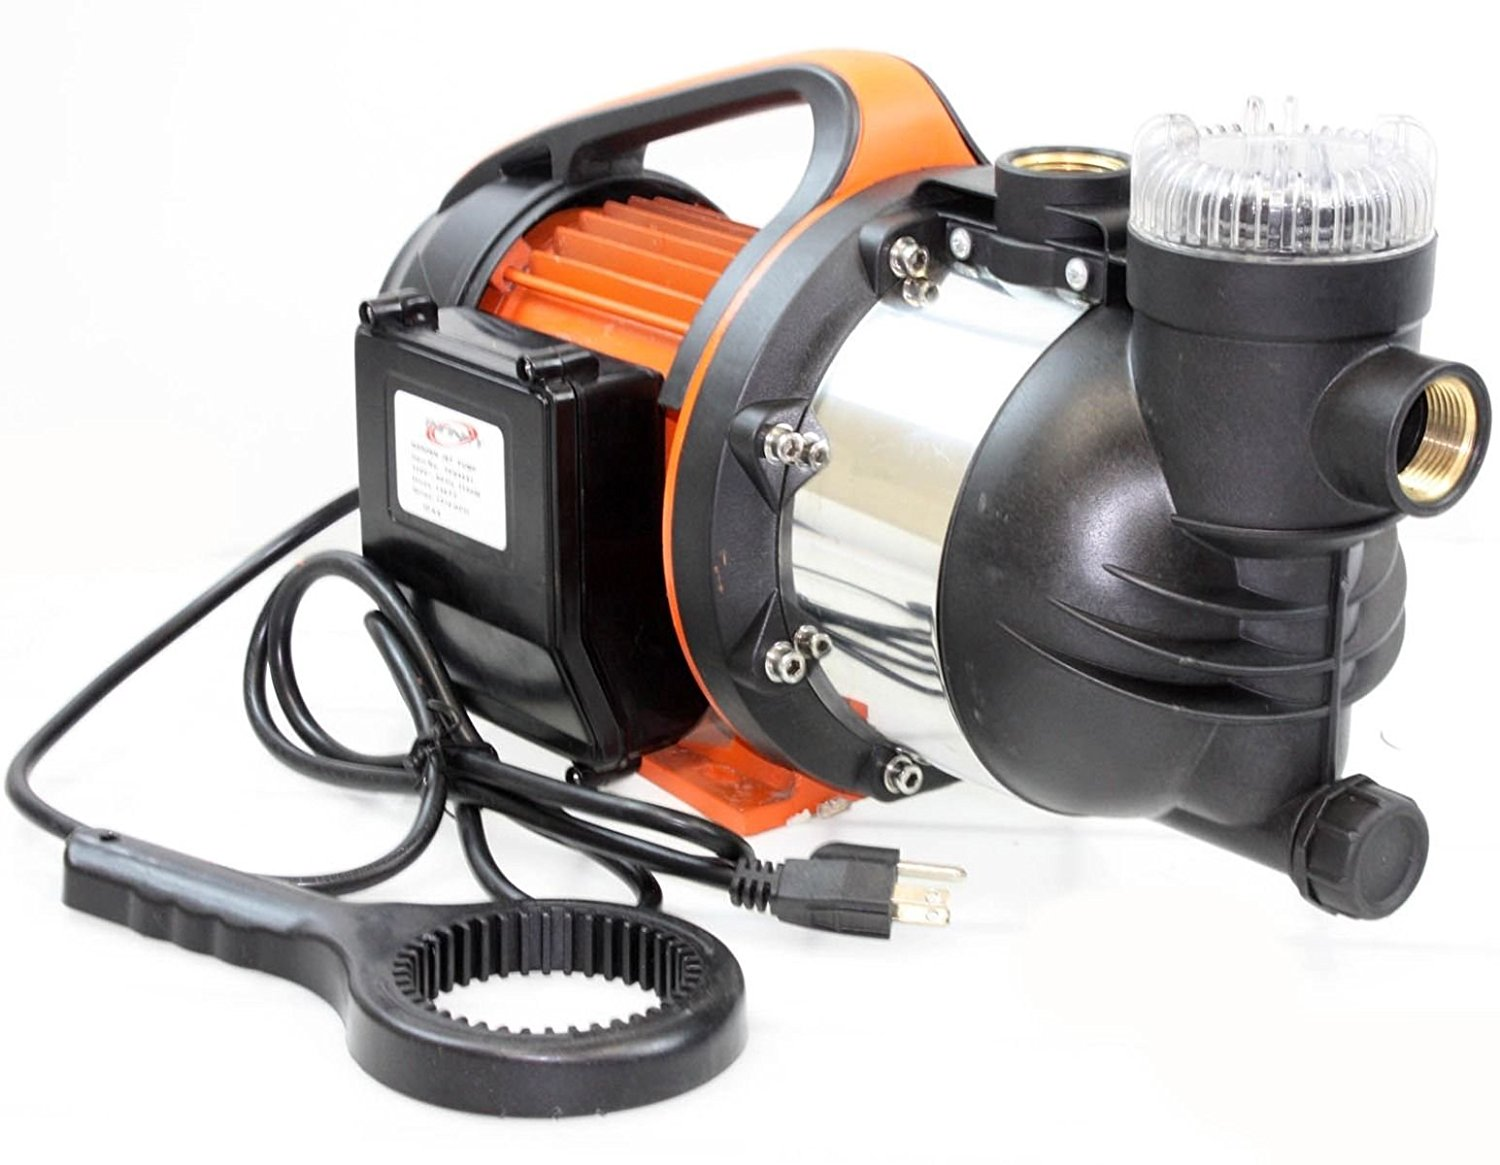 "Gracelove 1.5HP 1"" SHALLOW WELL GARDEN SPRINKLER JET WATER PUMP BOOSTER SELF PRIMING 1100W"